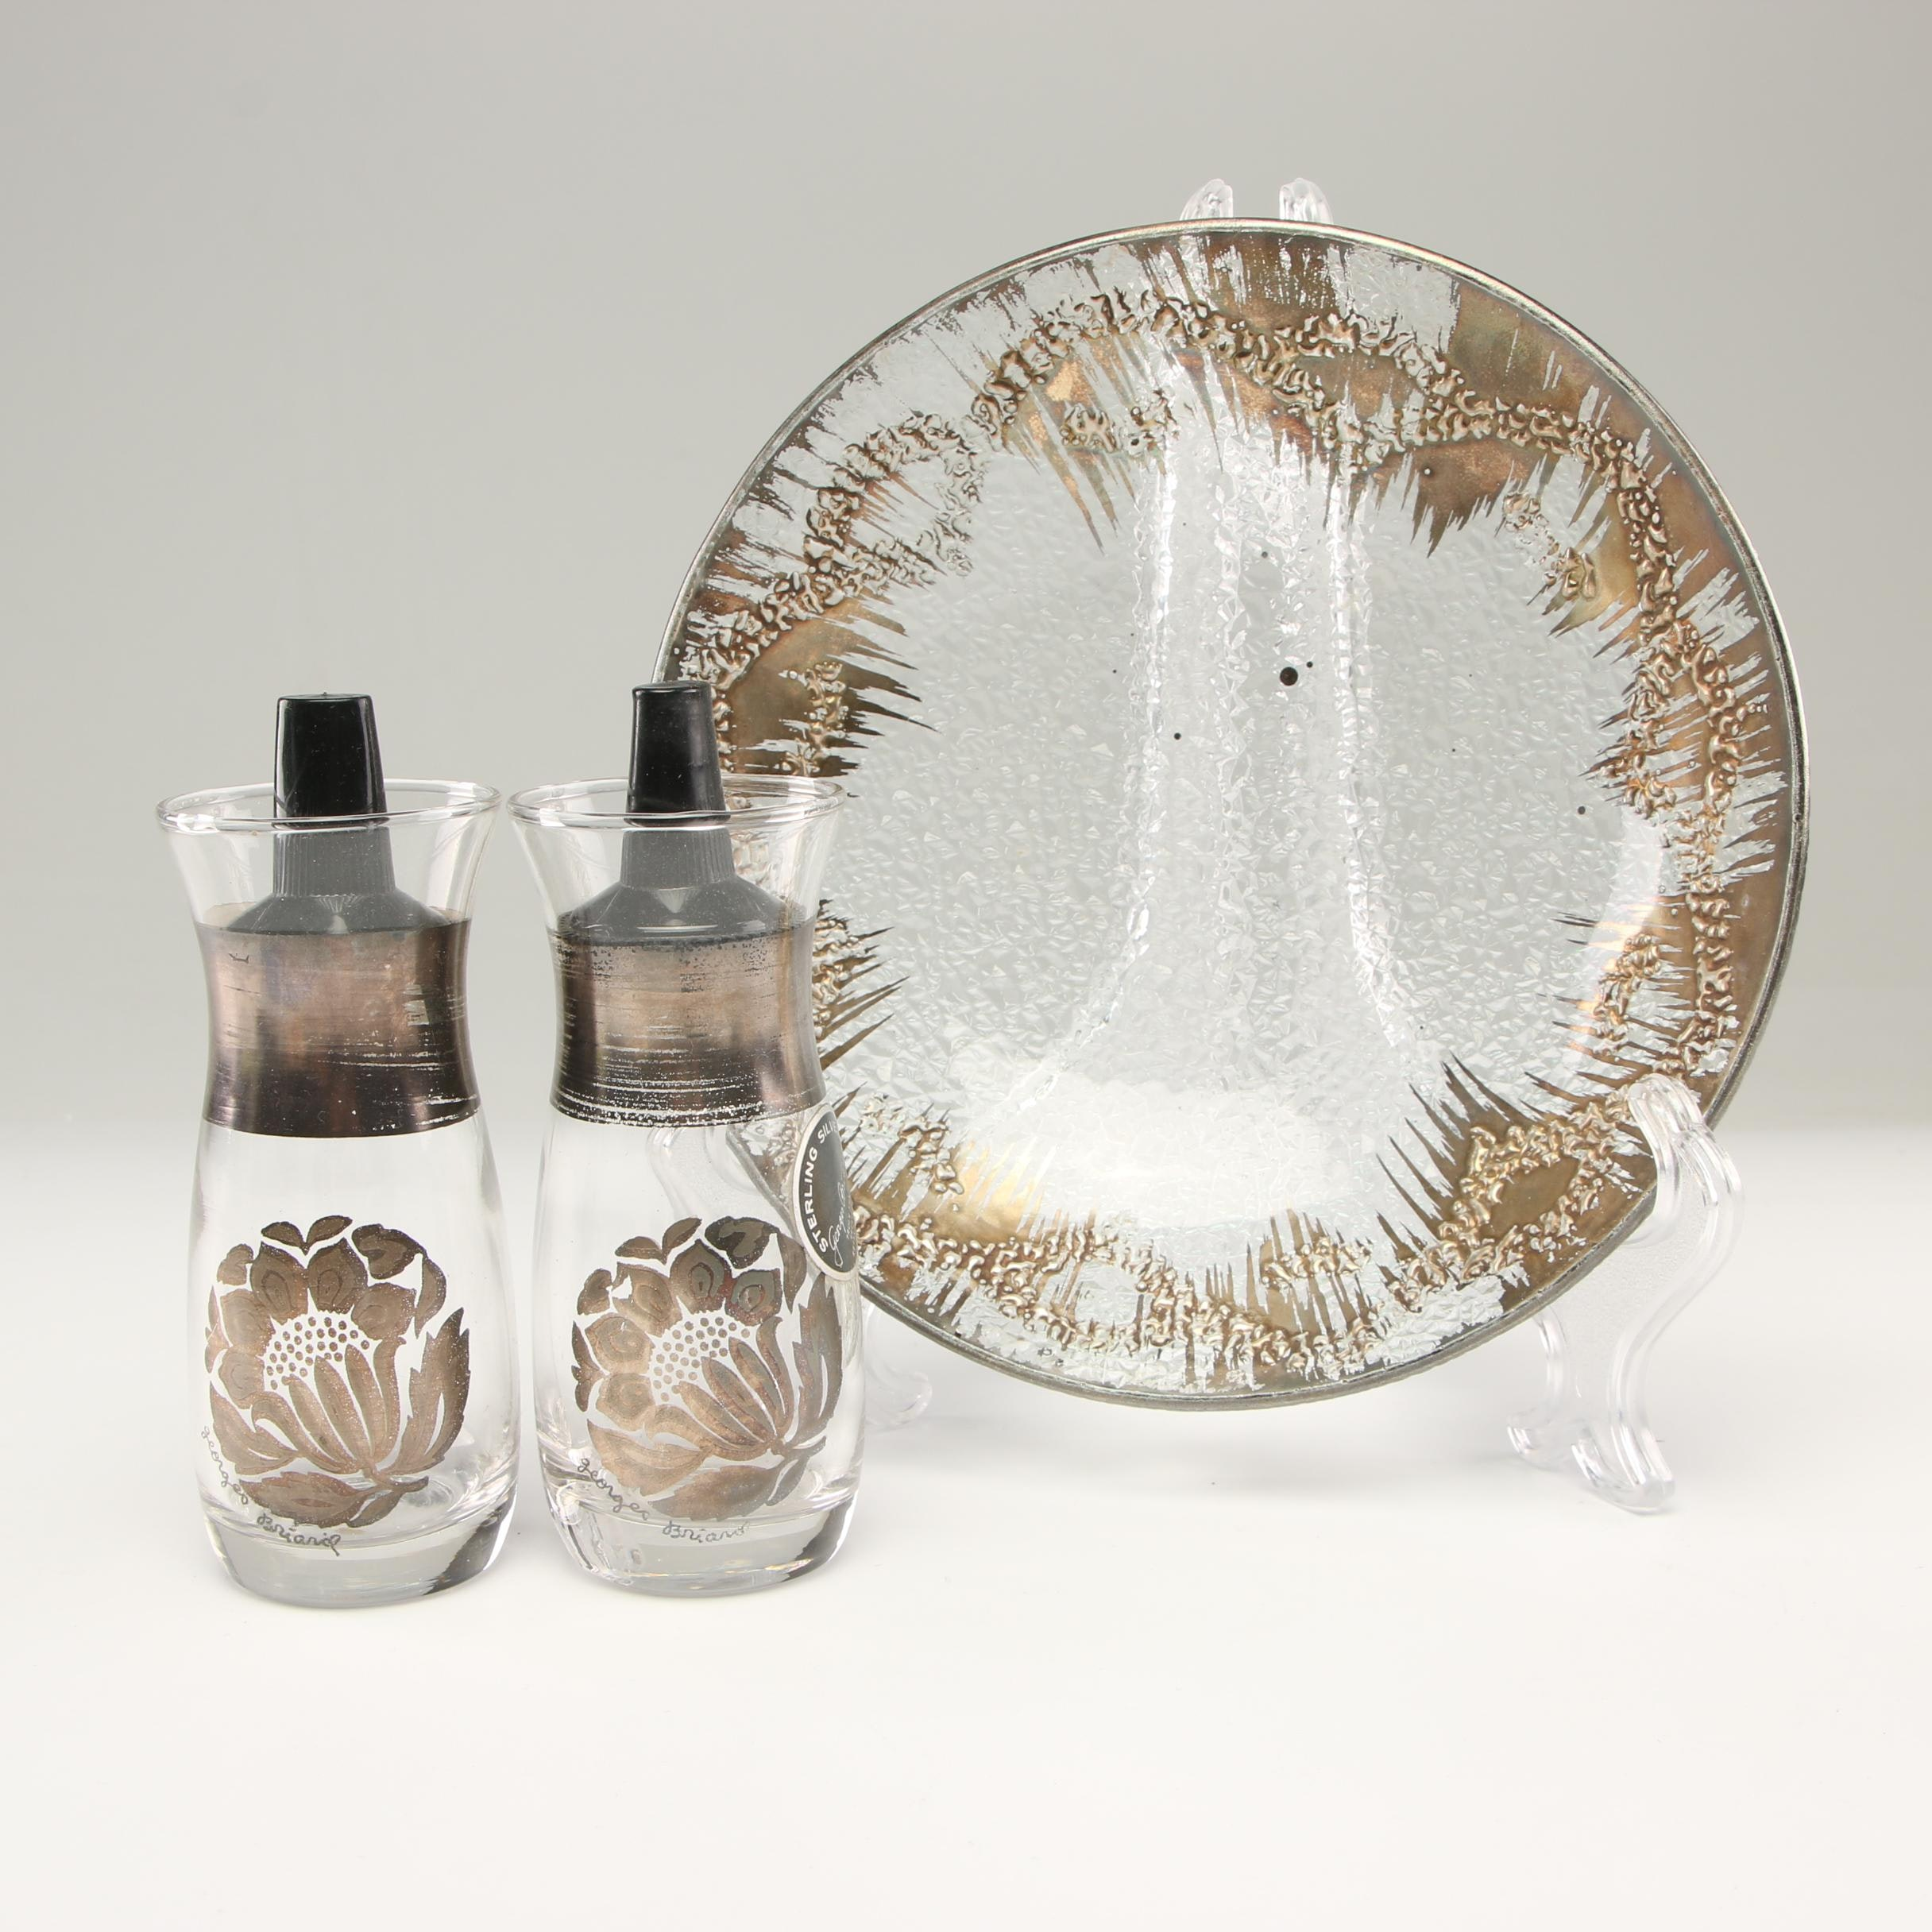 Georges Briard Salt and Pepper Shakers with Glass Bowl, Mid Century